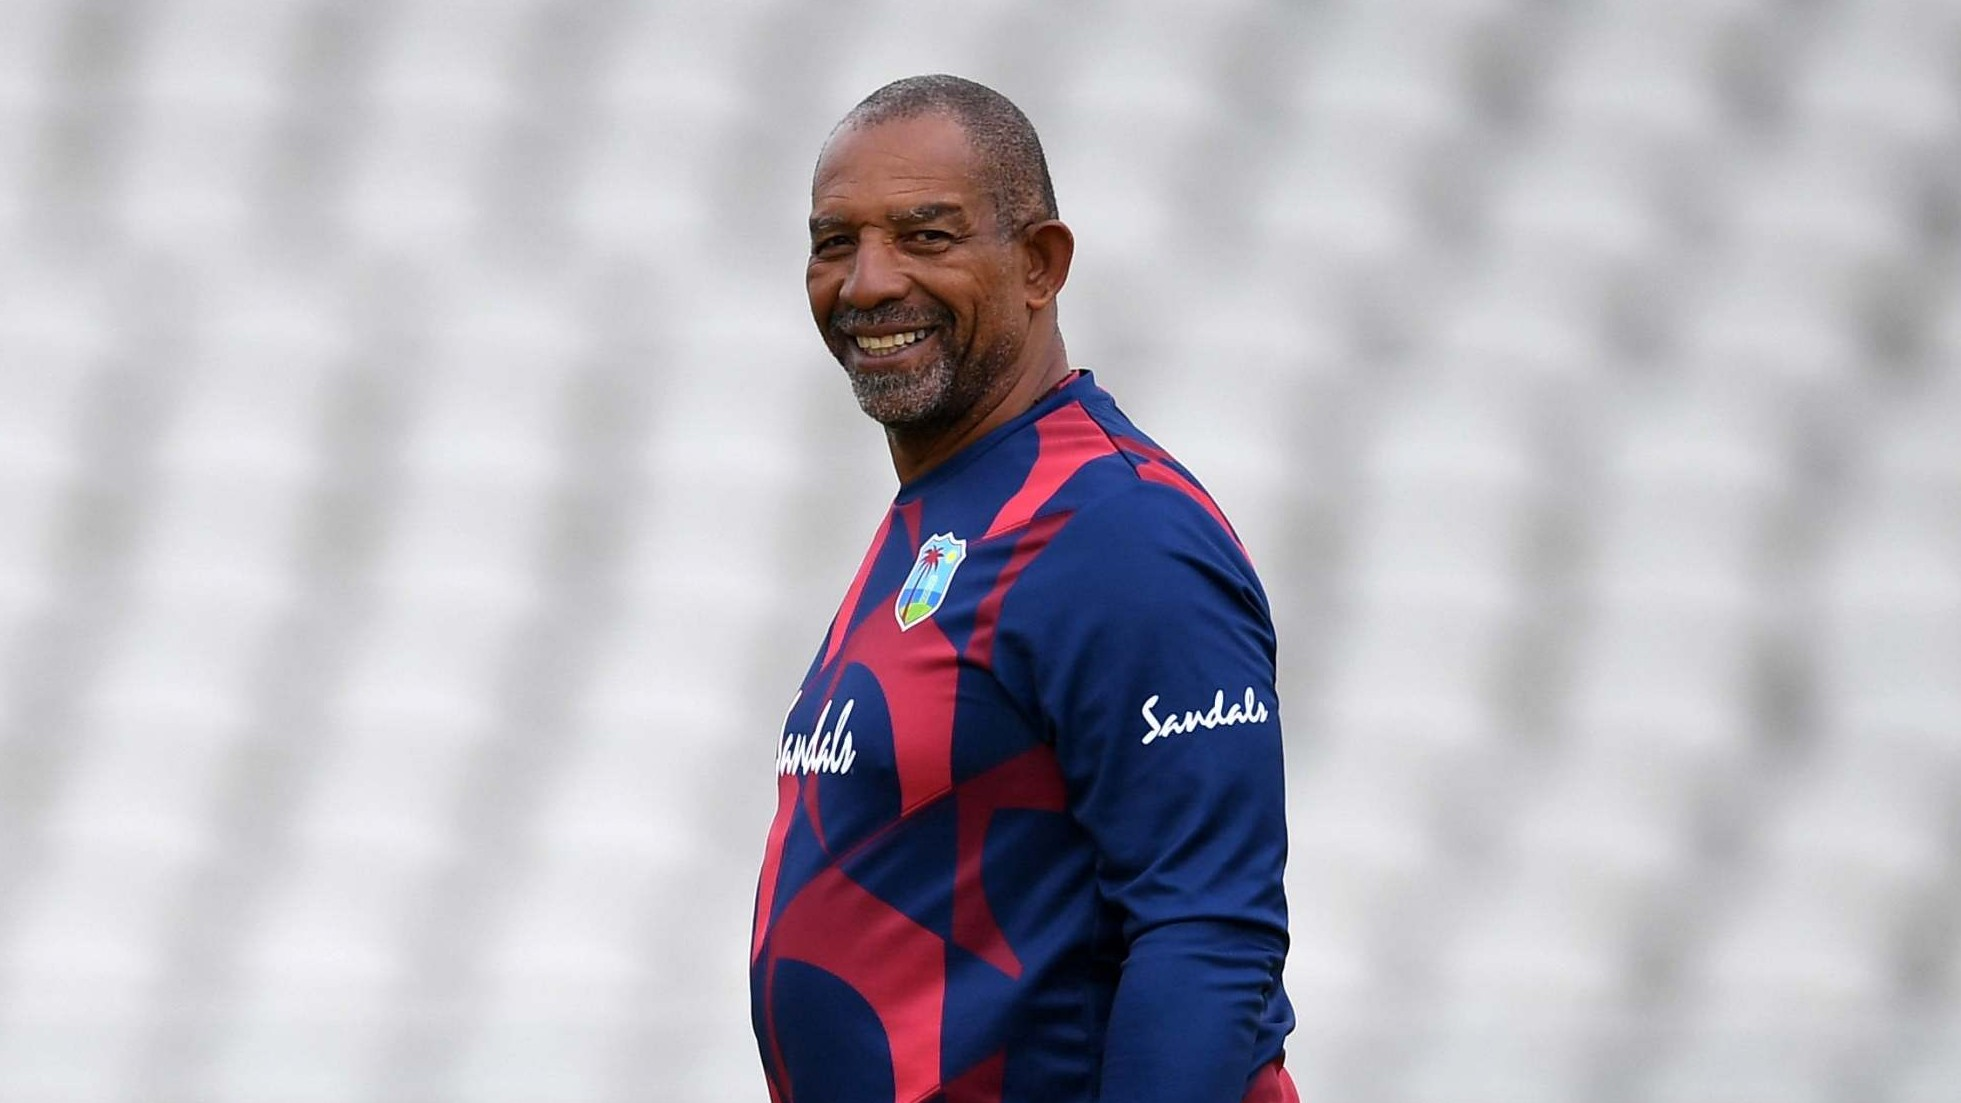 ENG v WI 2020: Phil Simmons in self-isolation after attending funeral; tests twice negative for COVID-19